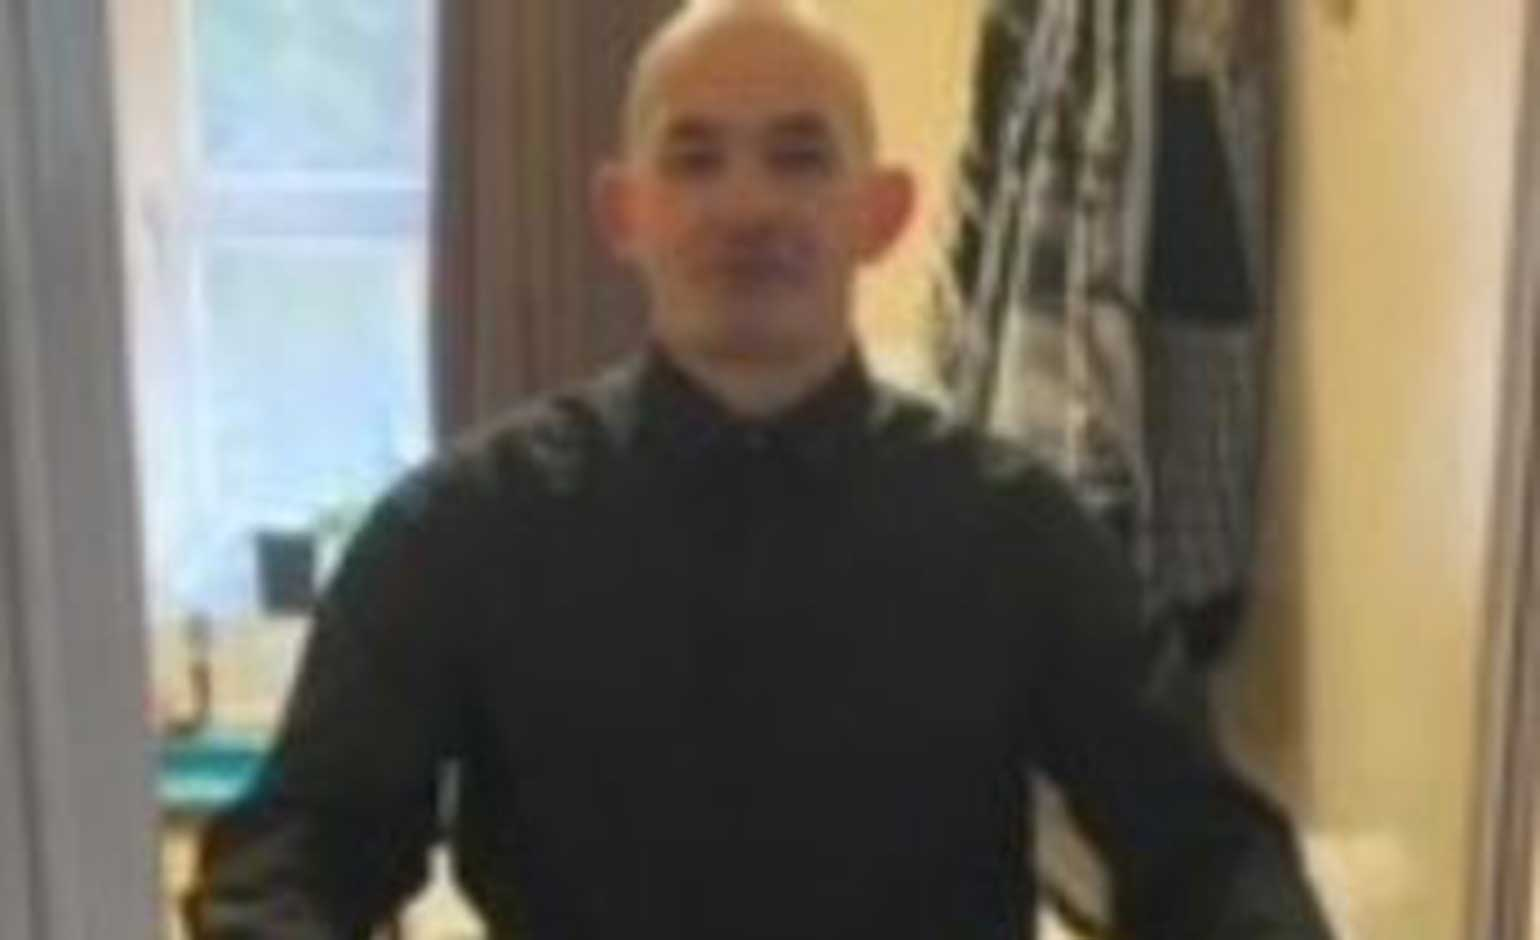 Public's help sought to find missing Radstock man who may be in Bath